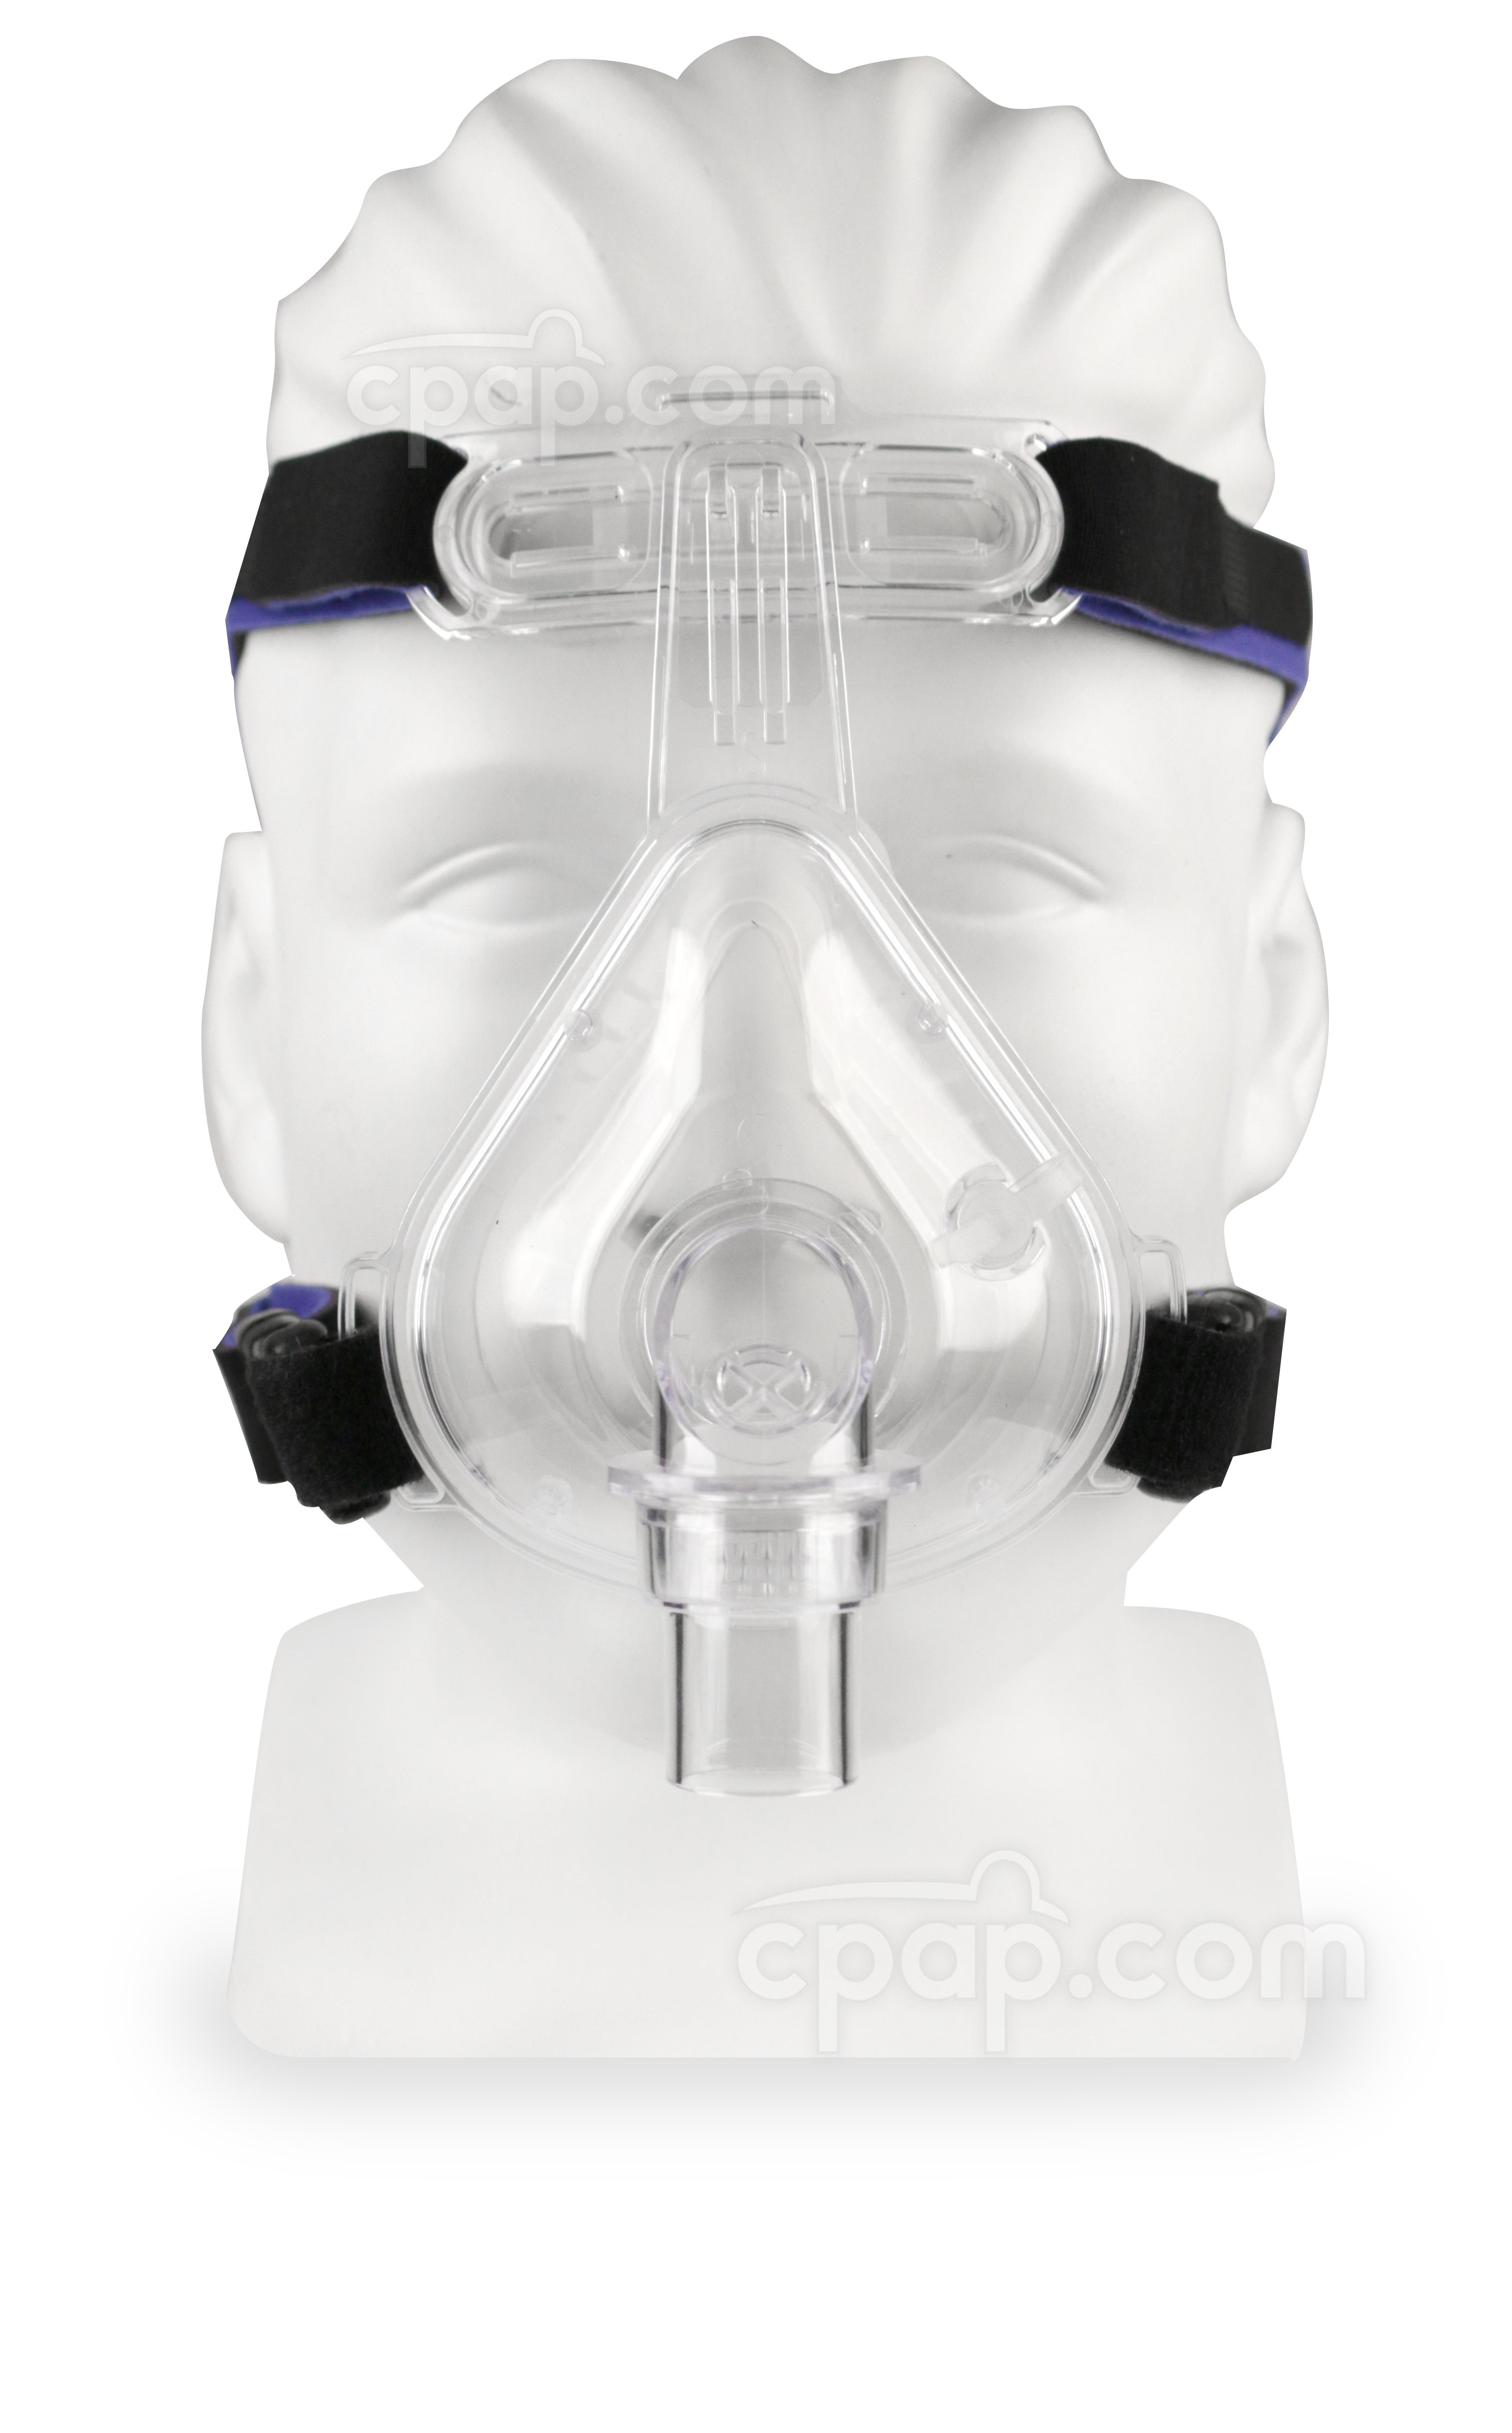 Full Advantage Full Face CPAP Mask with 4 Point Headgear - Front - Shown on Mannequin - Not Included